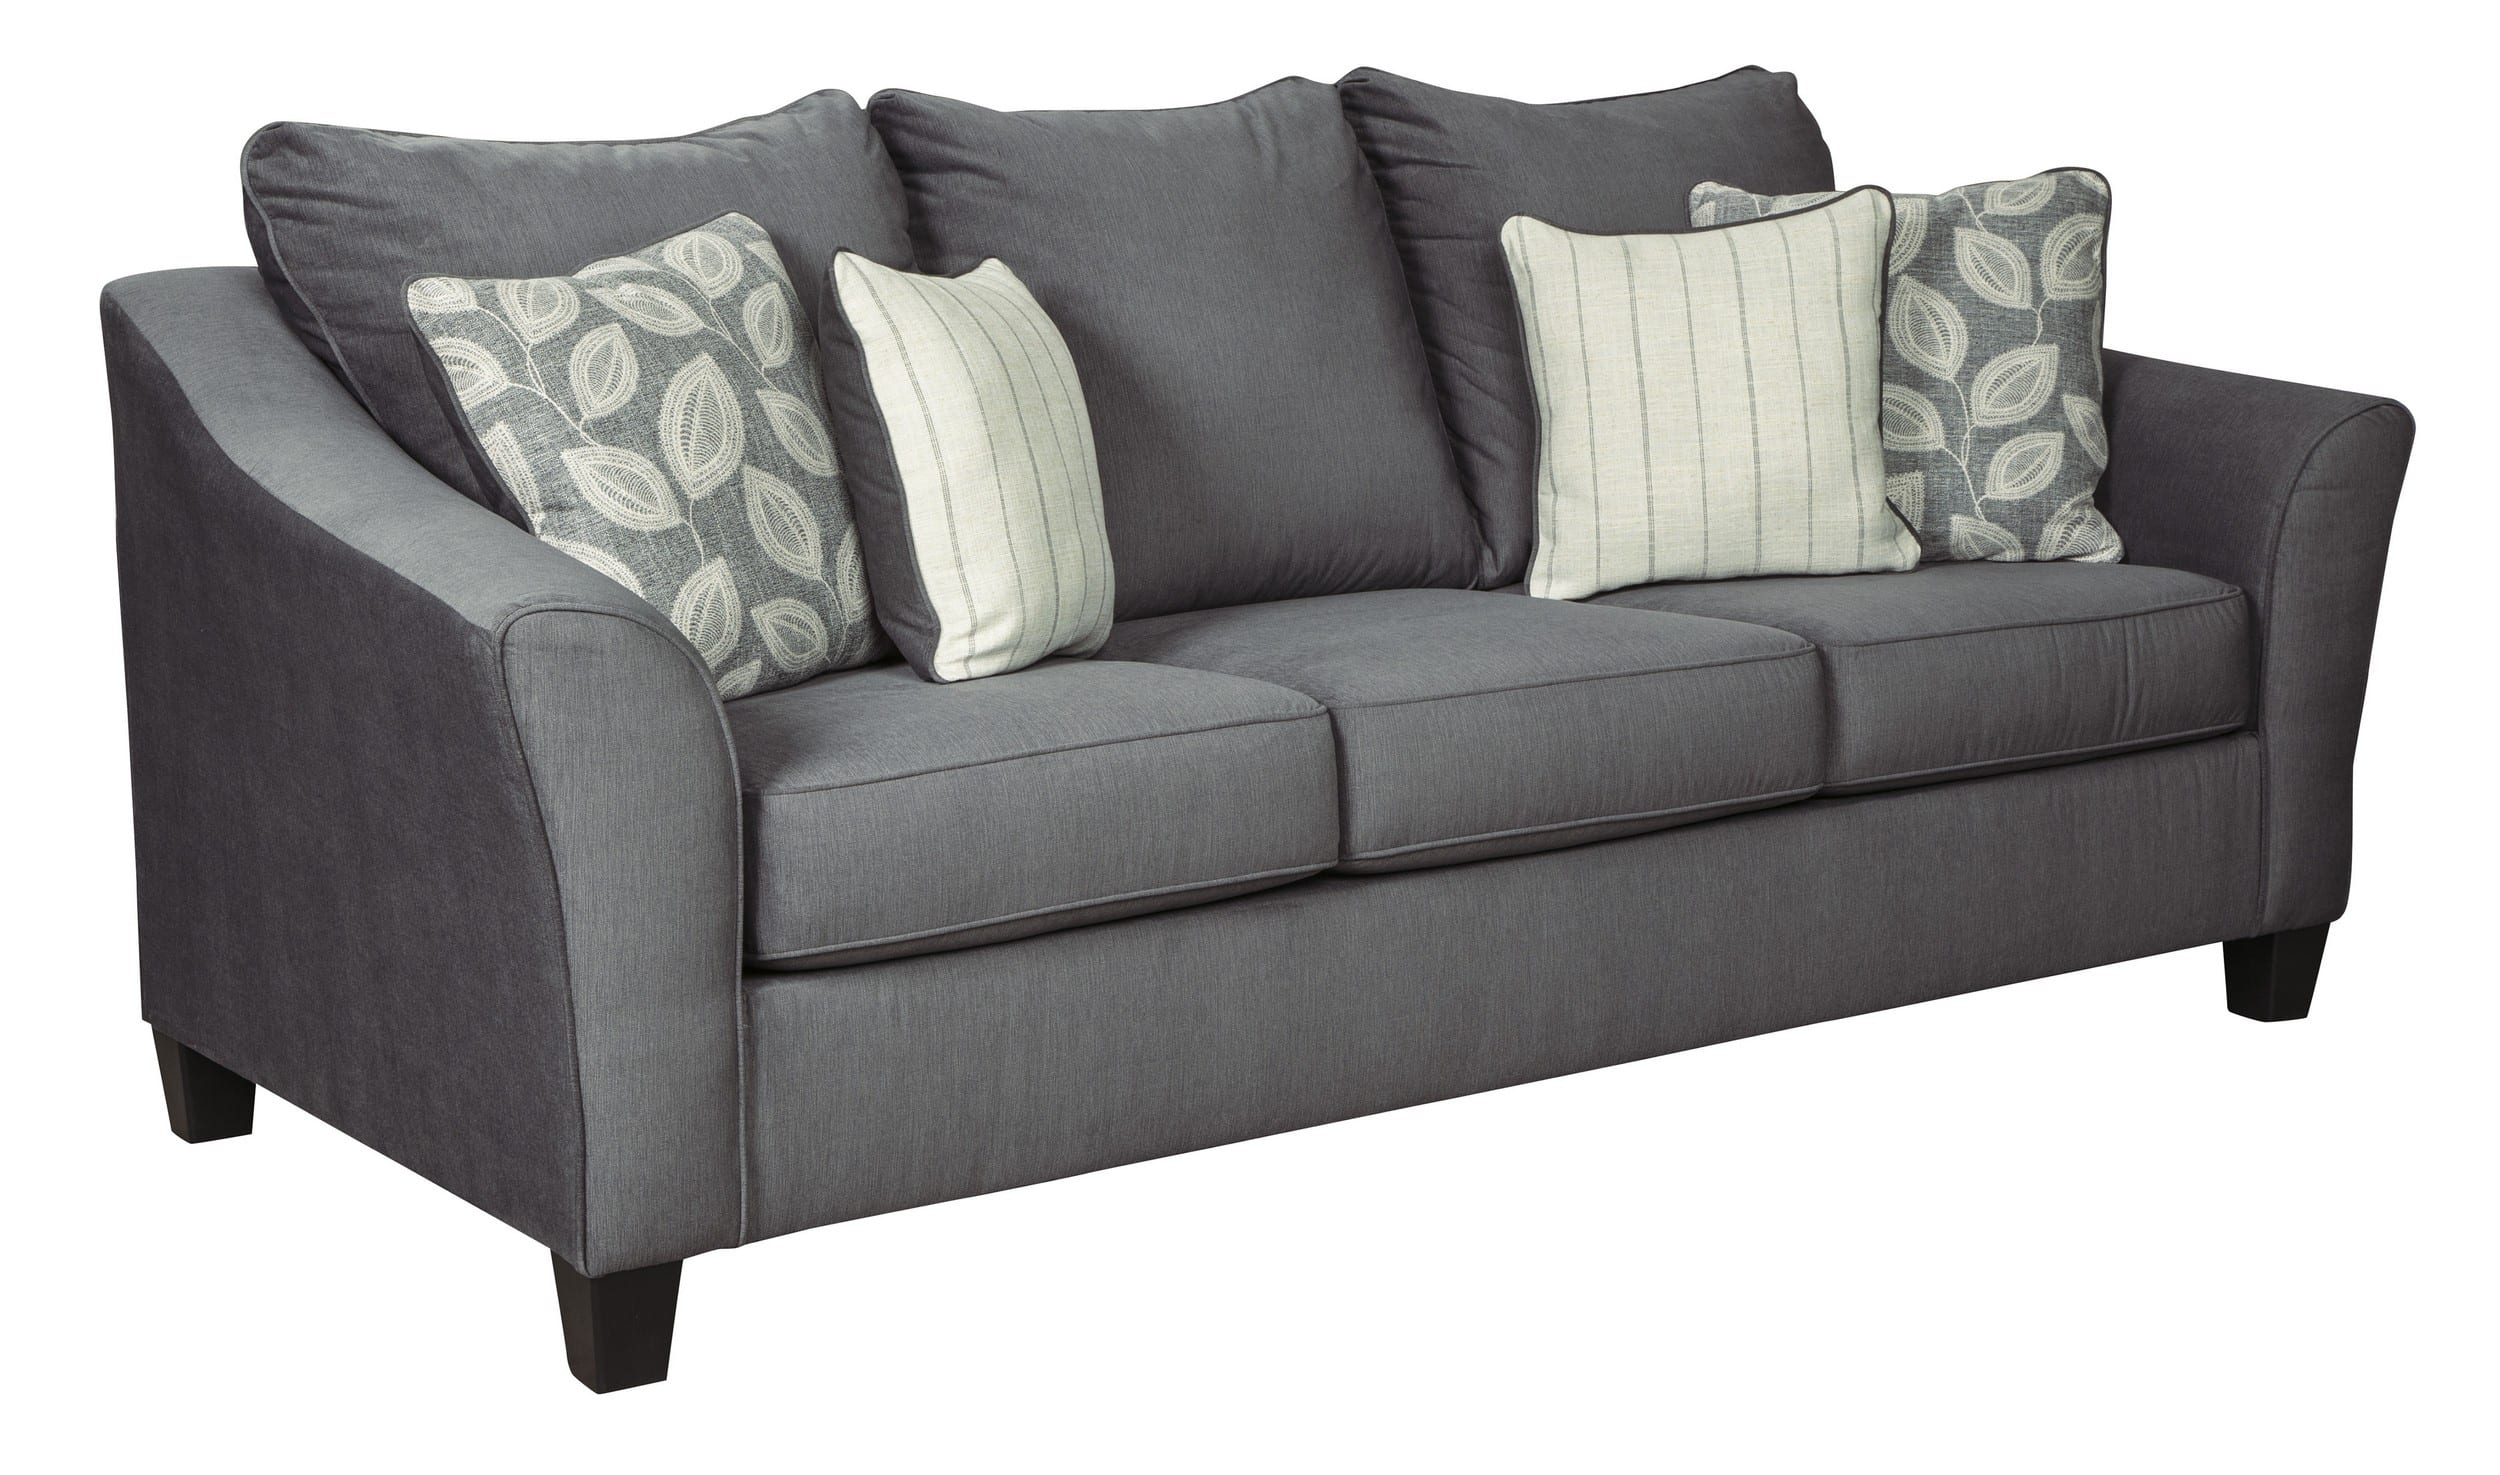 Queen Sofa Bed Signature Design By Ashley 9420439